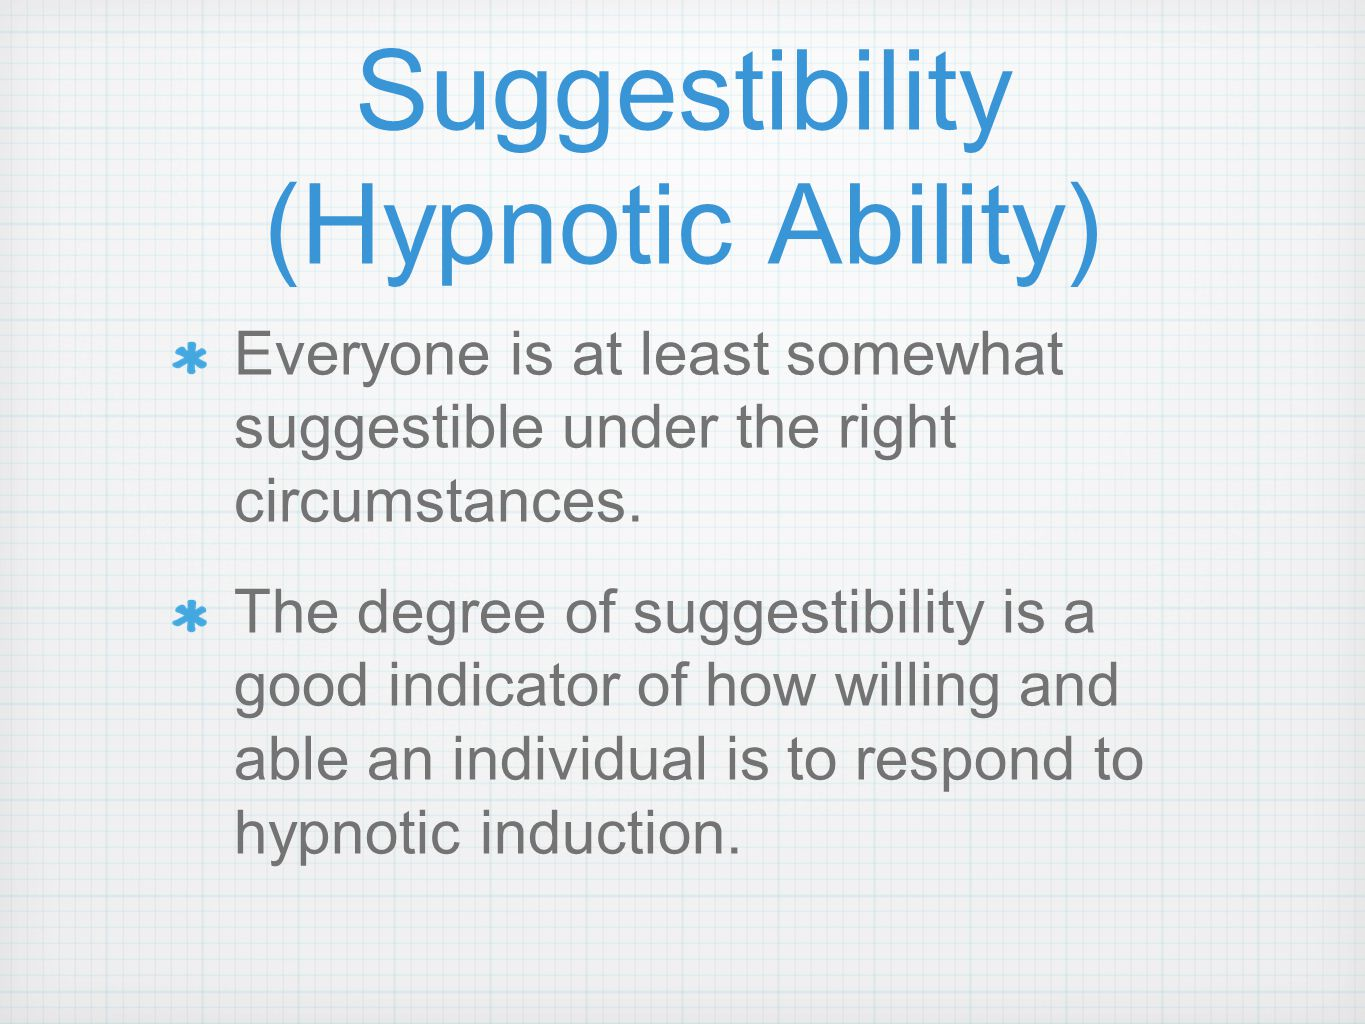 Suggestibility (Hypnotic Ability) Everyone is at least somewhat suggestible under the right circumstances.